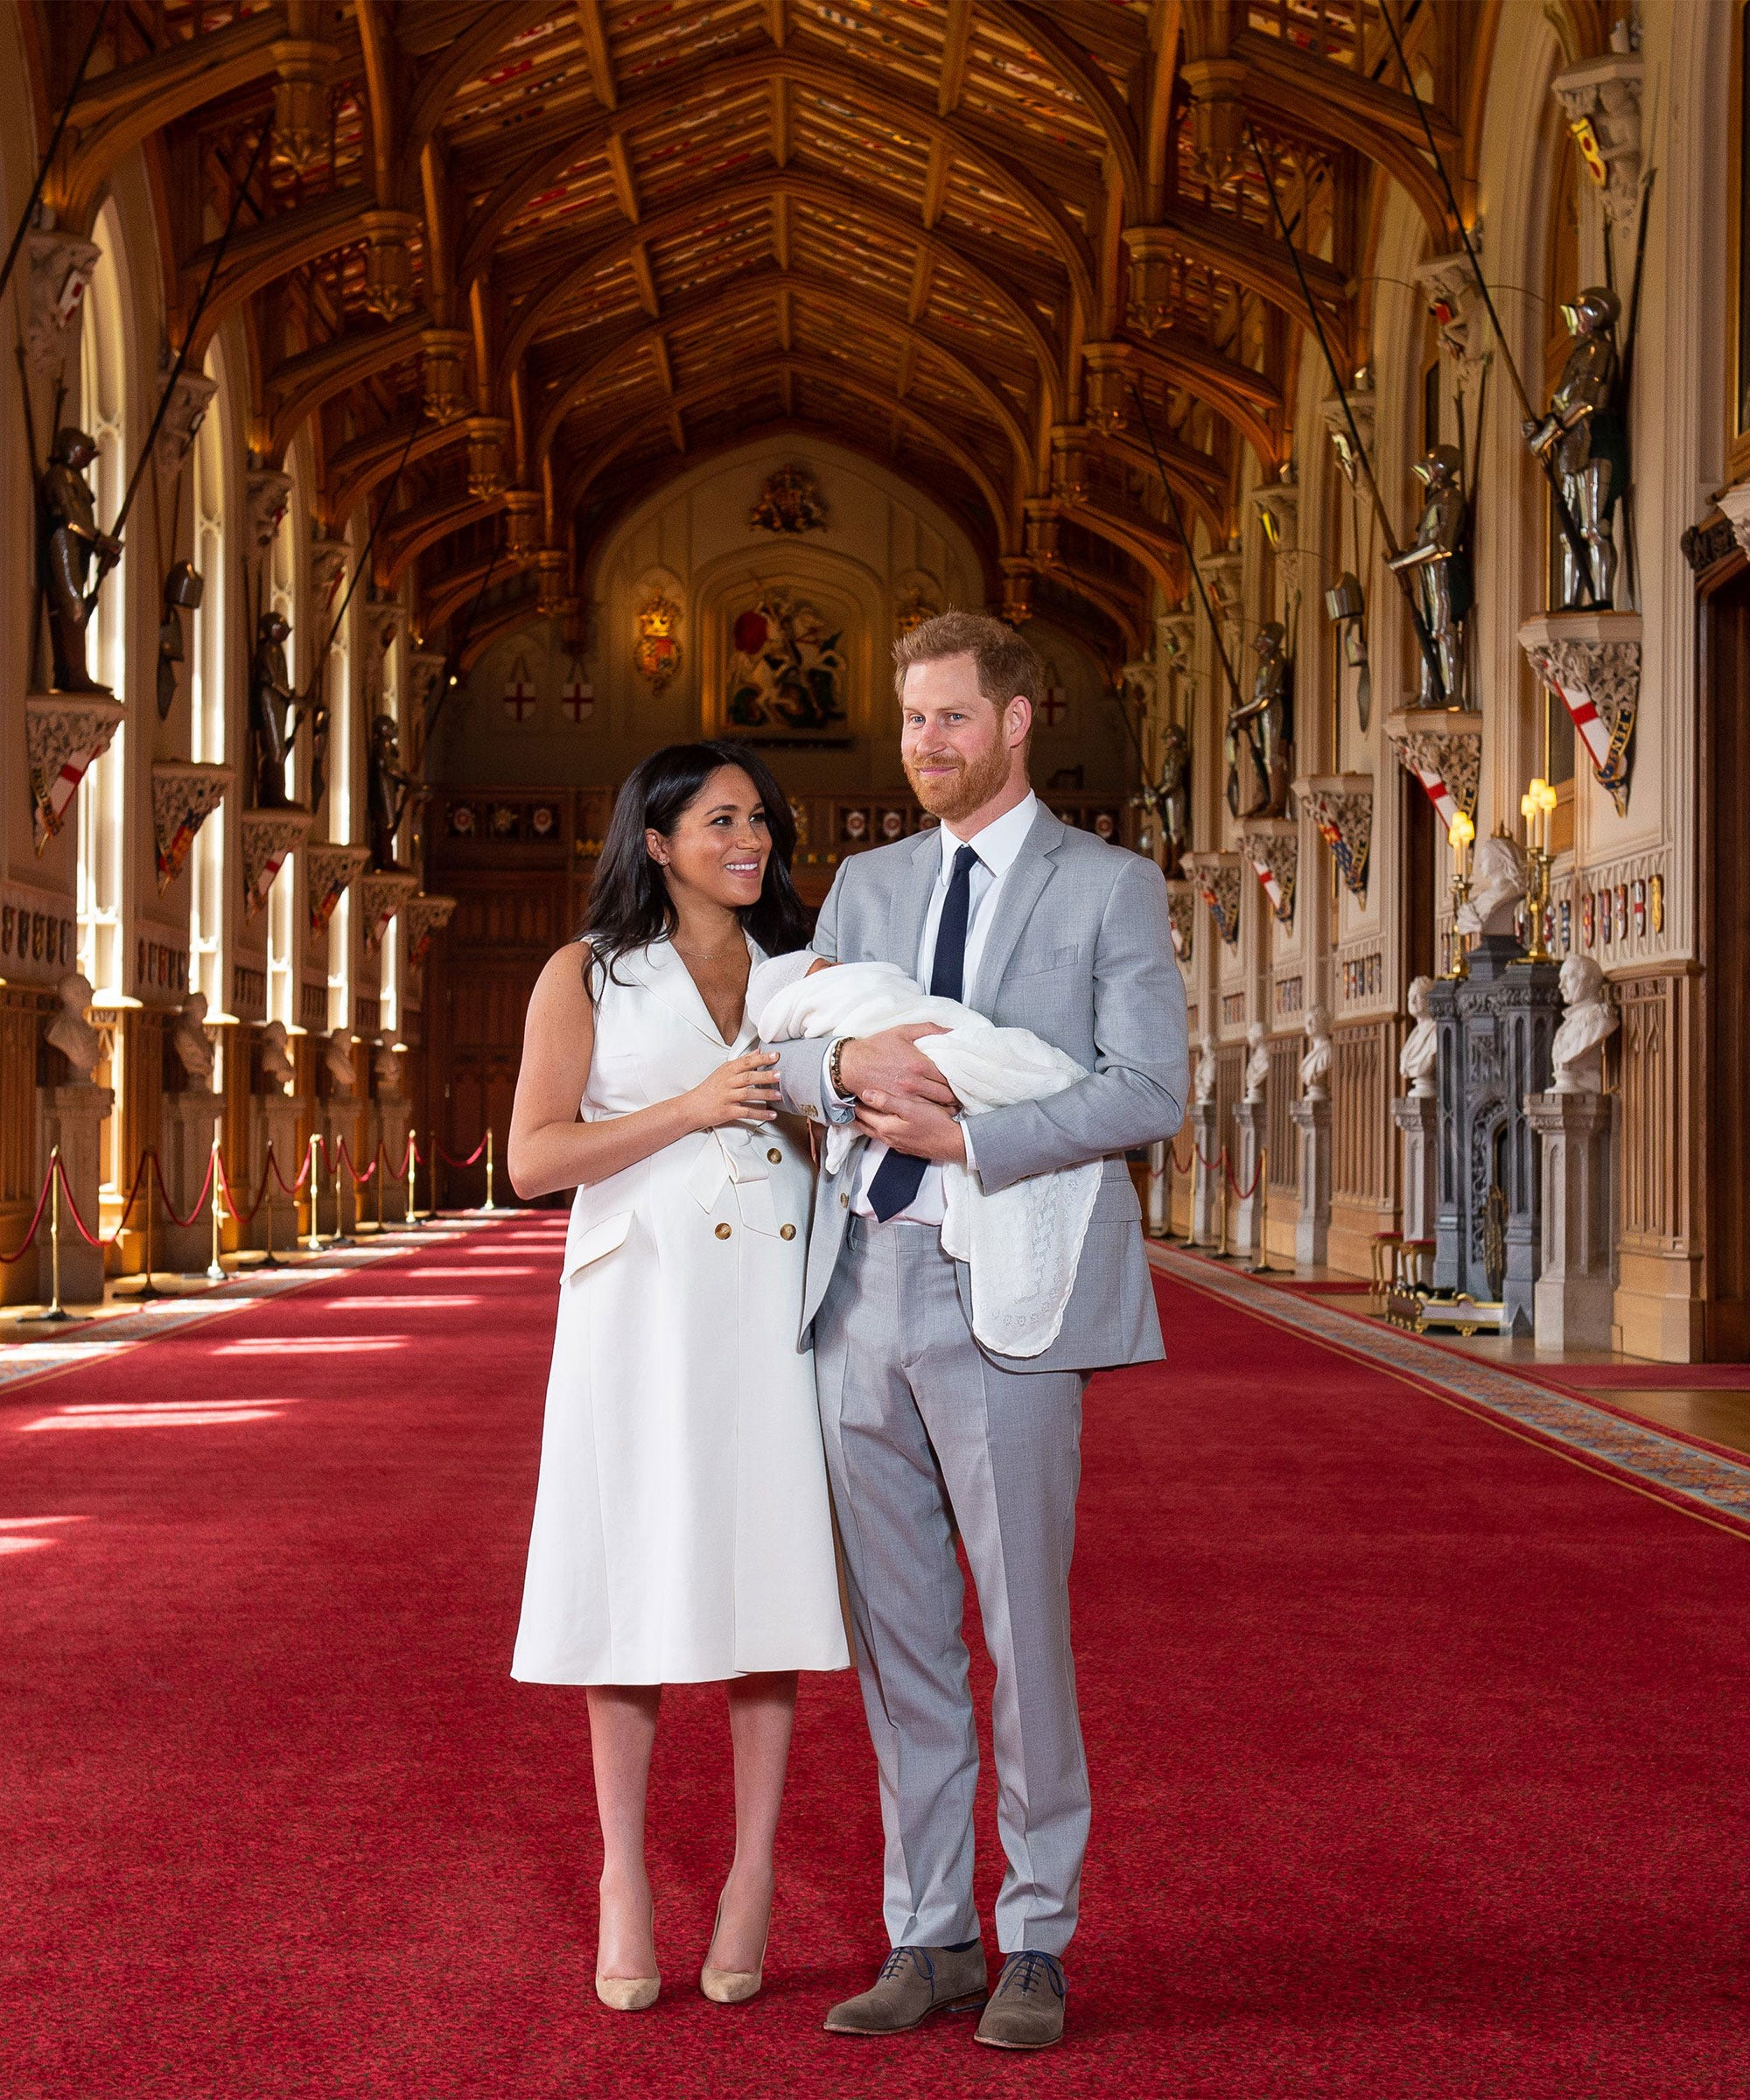 The Site Of The Royal Baby's First Appearance Has Significance For Meghan & Harry